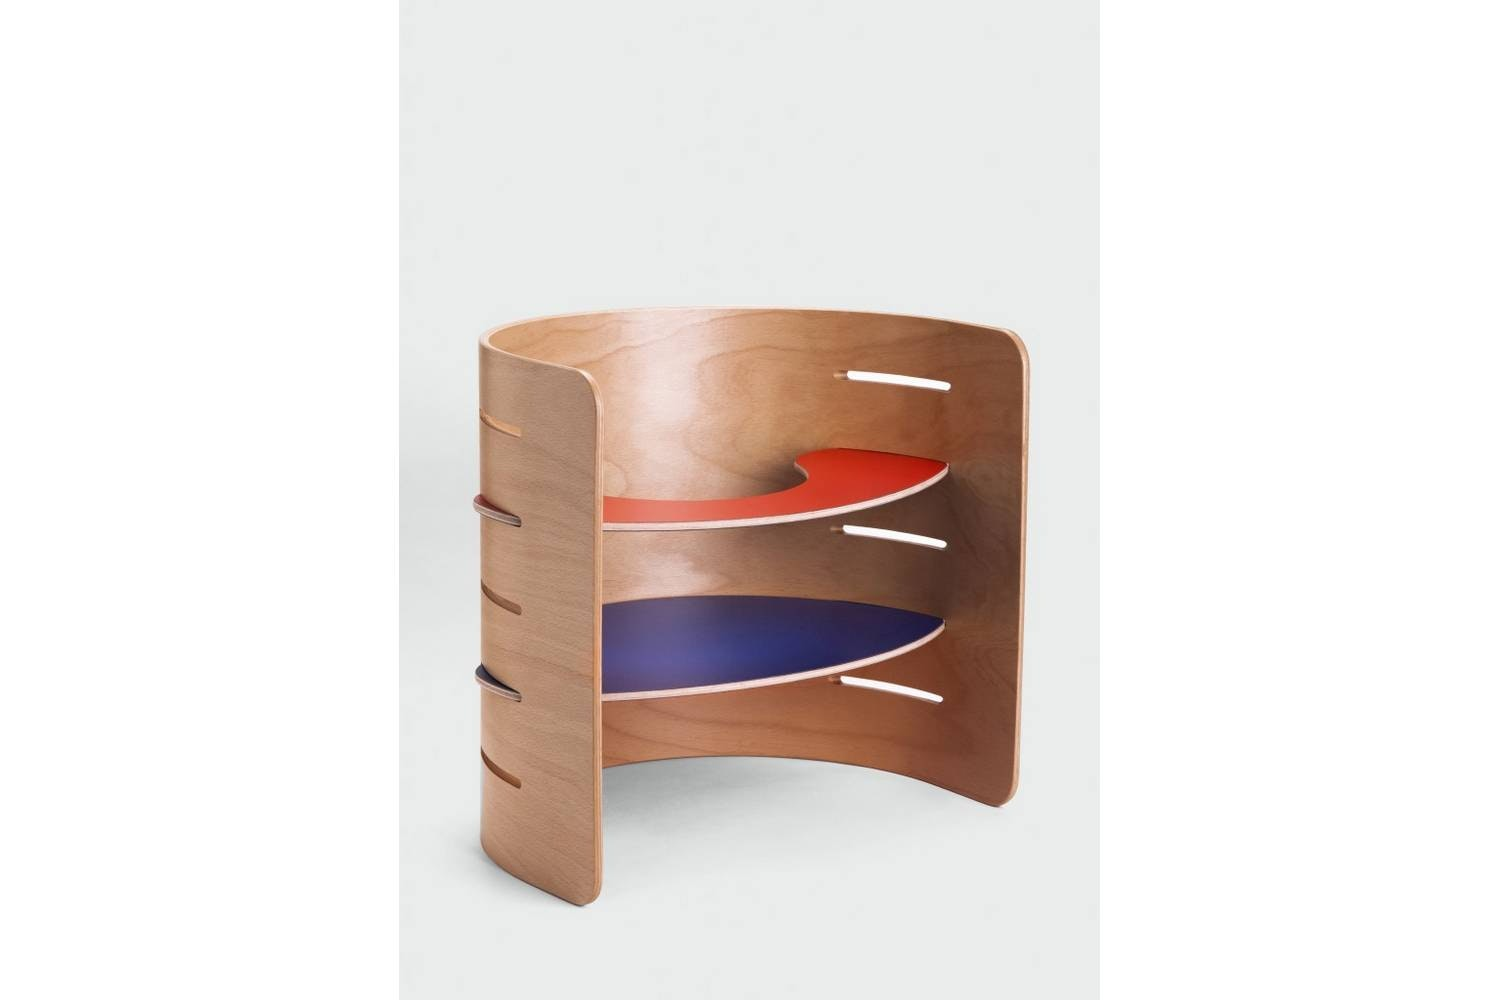 Child's Chair by Kristian Vedel for Architectmade